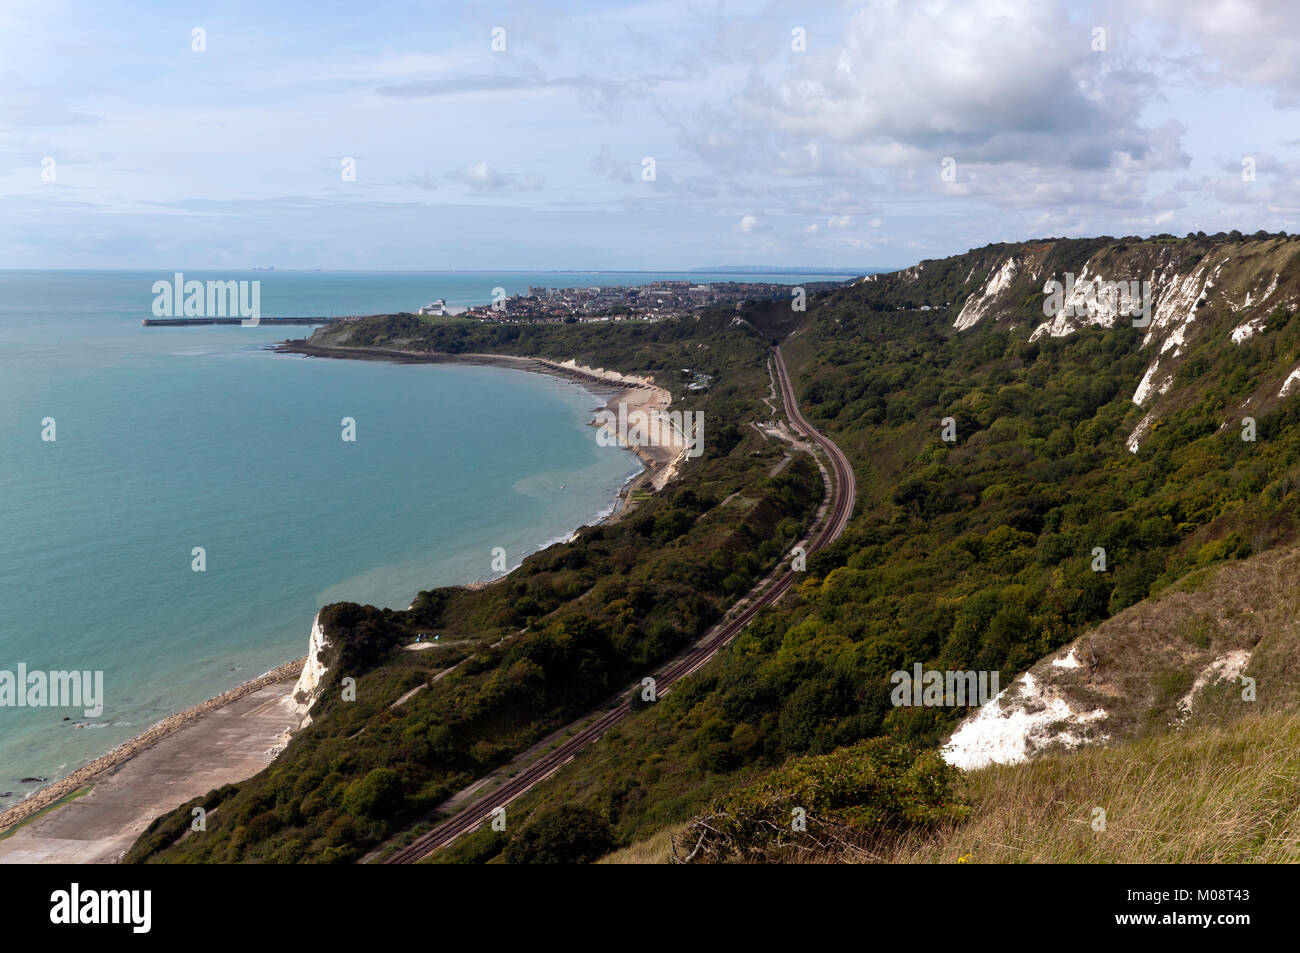 Cliff-top view taken from Capel-Le-Ferne, looking towards the town of Folkestone - Stock Image